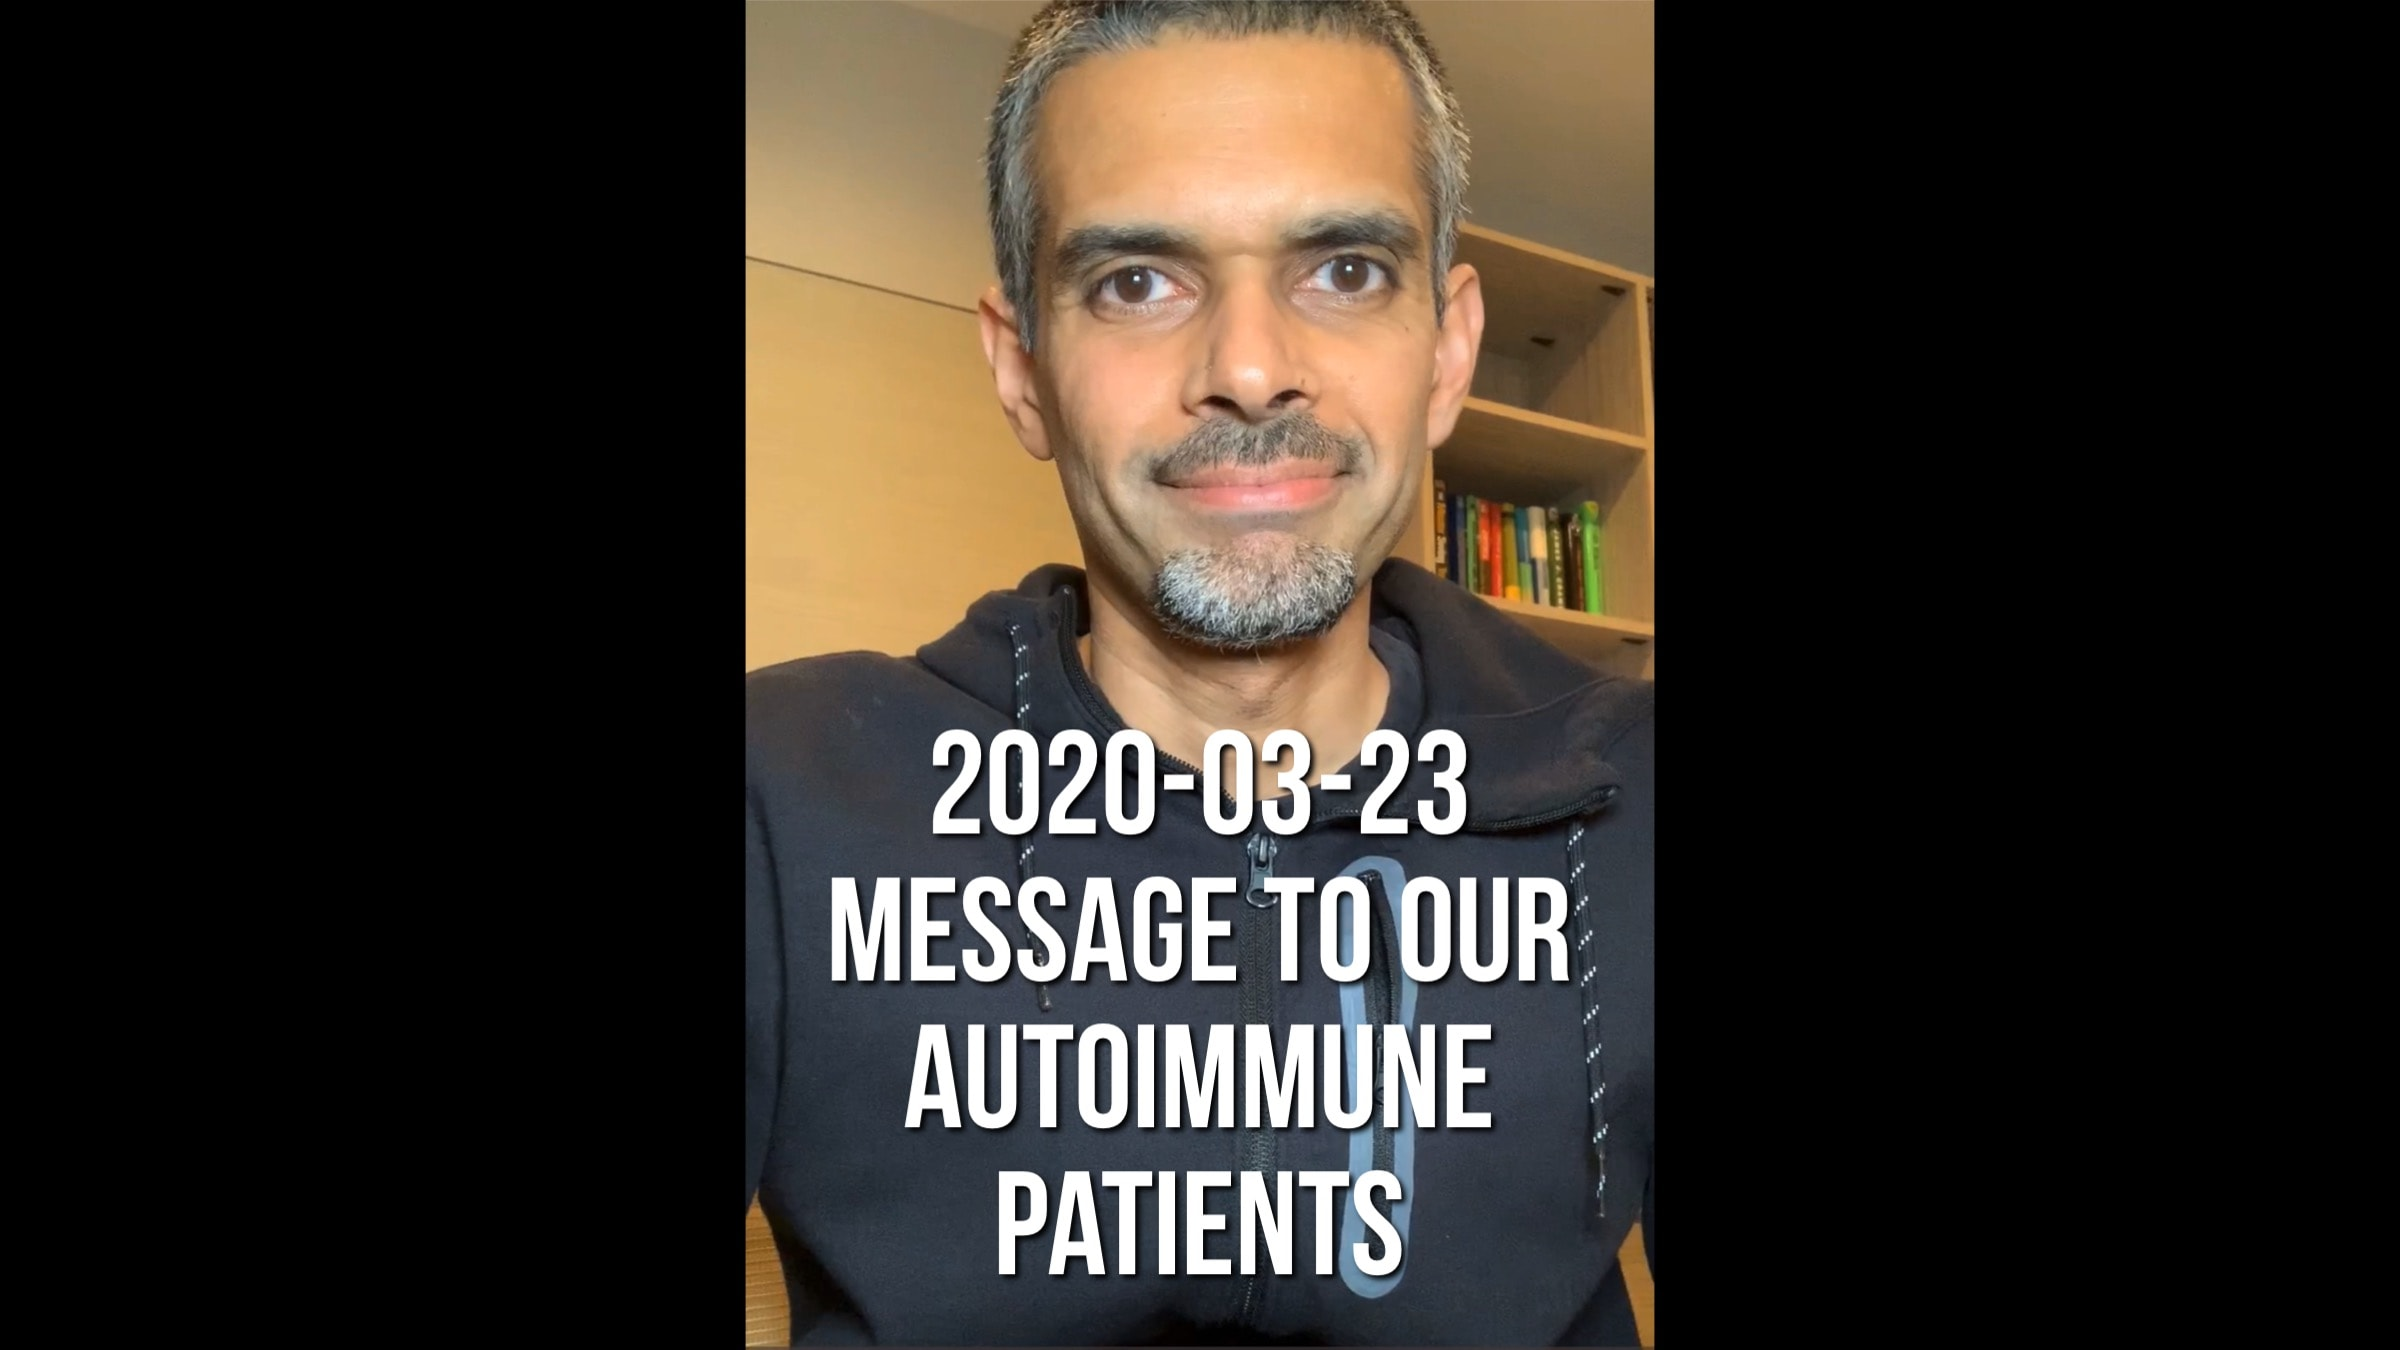 Corona update- Msg to our AutoImmune patients- 20200323